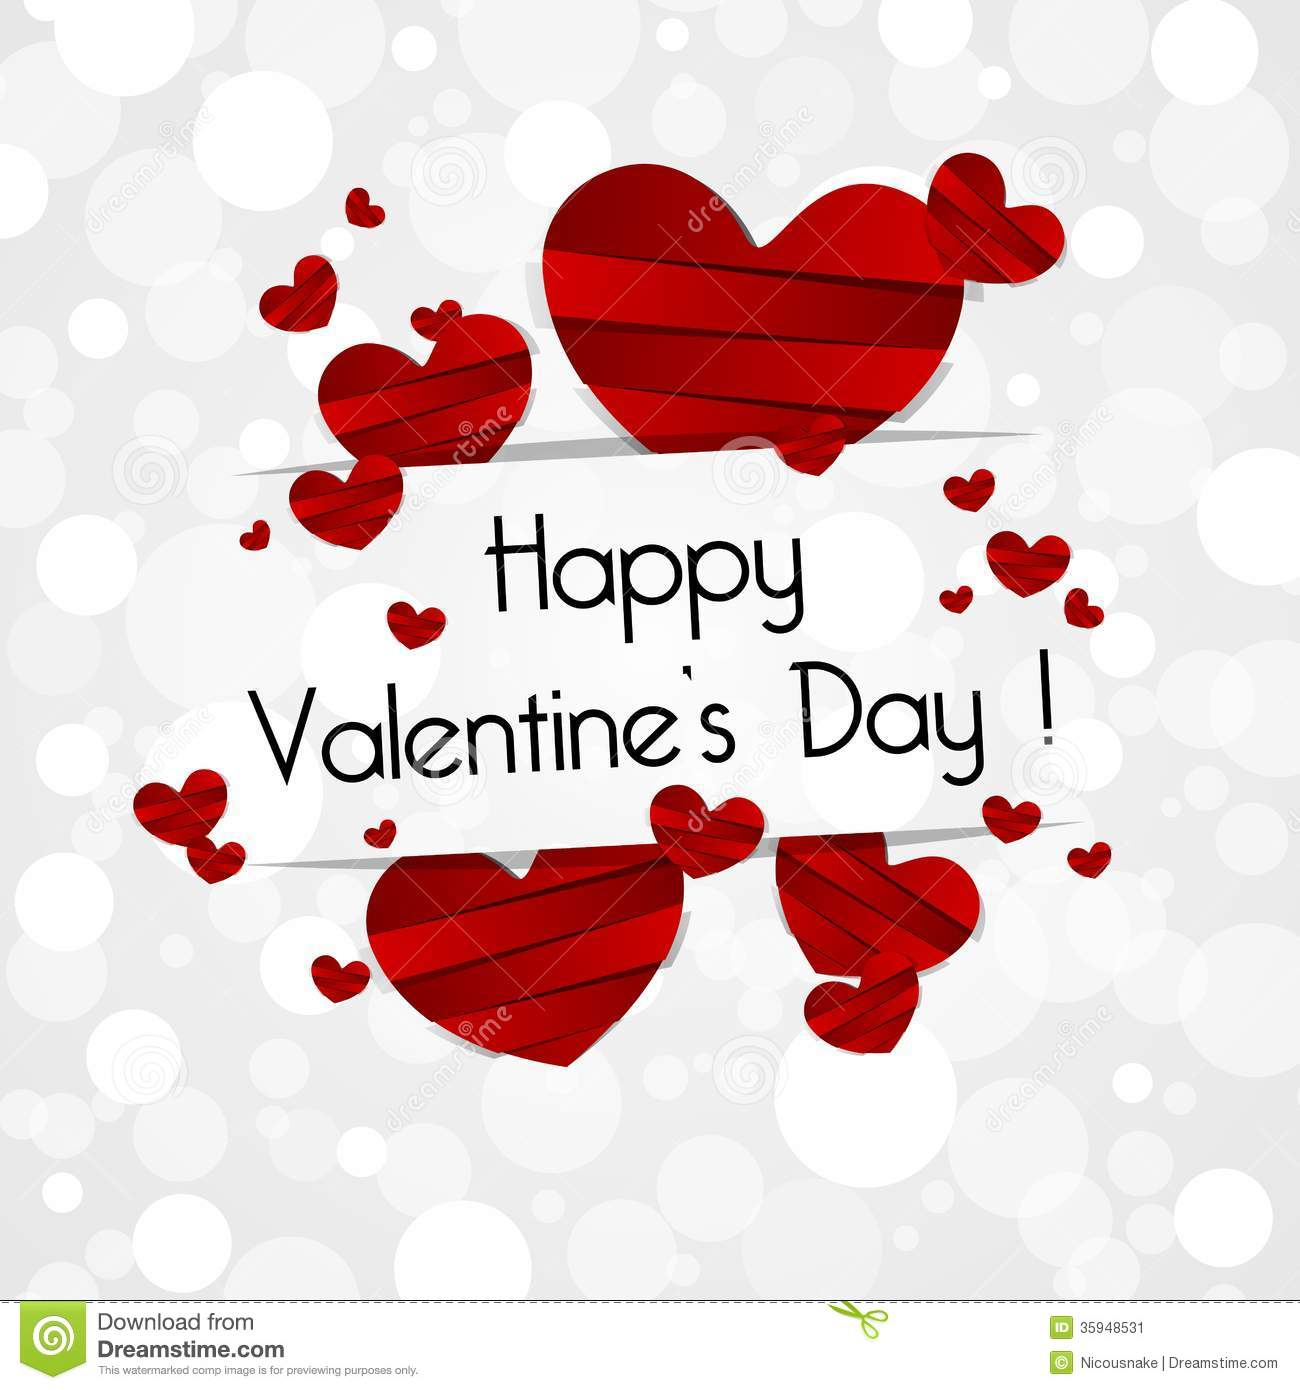 Happy Valentines Day Card Stock Vector Illustration Of Image 35948531